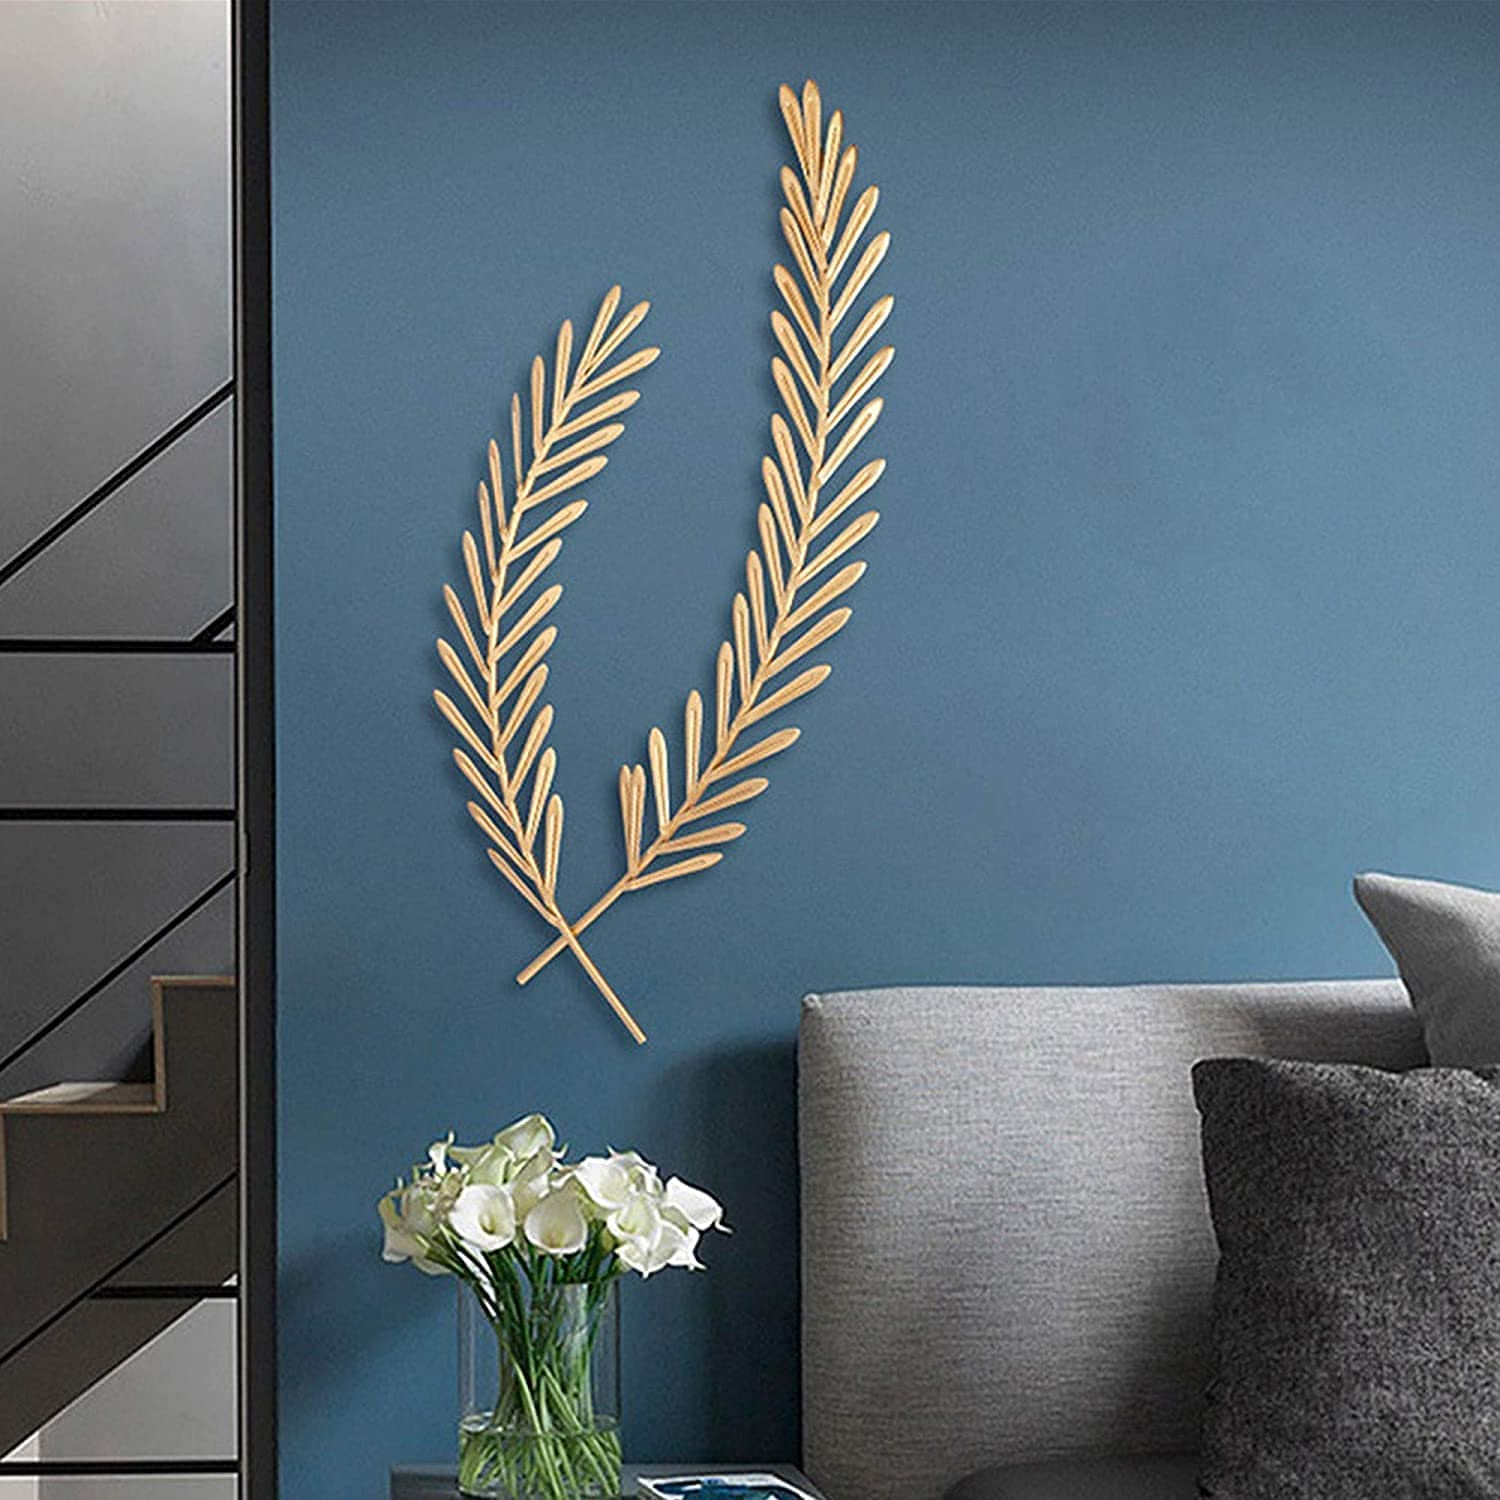 qwertyuio Wall Clocks for Living Room Leaf Wall Art Metal, Hanging Leaves Wall Decor for Living Room, Golden Wheat Leaf Artwork Sculpture, for Bathroom Bedroom Home Office